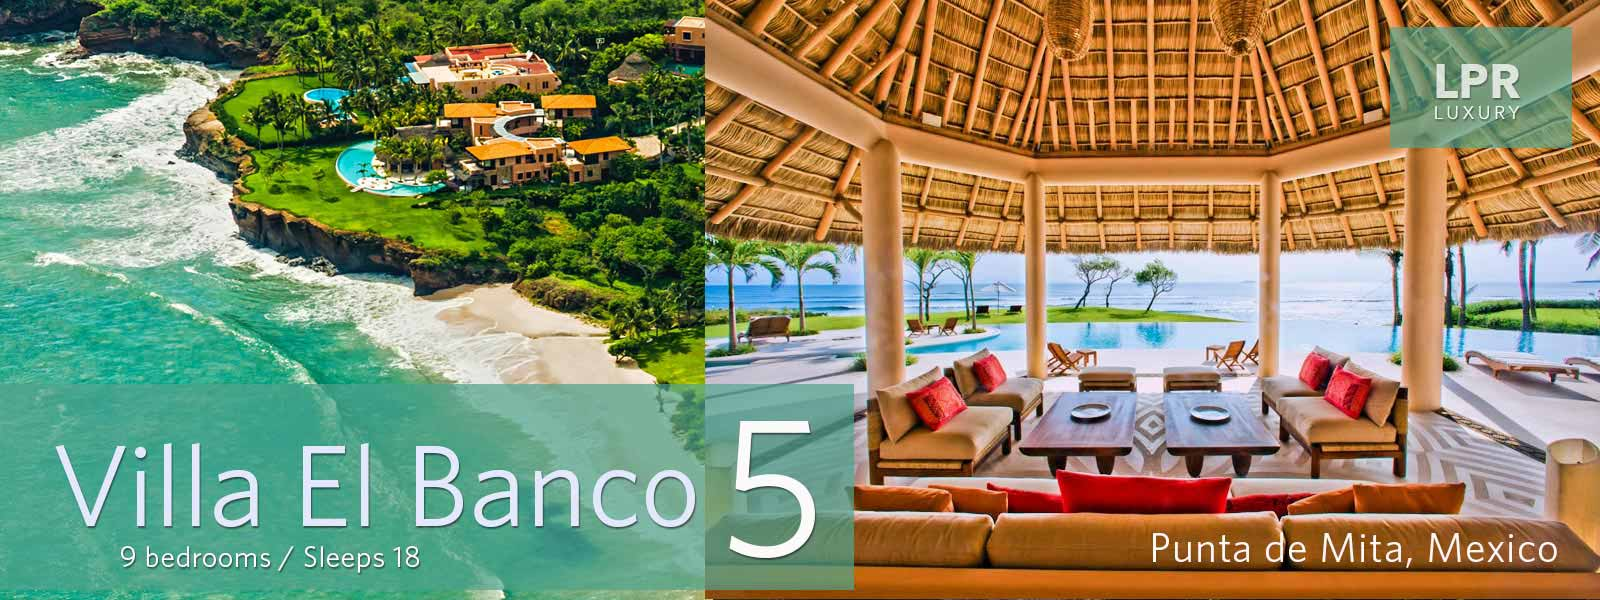 Villa El Banco 5 - Luxury Punta Mita Rentals and Real Estate - Vallarta | Nayarit, Mexico